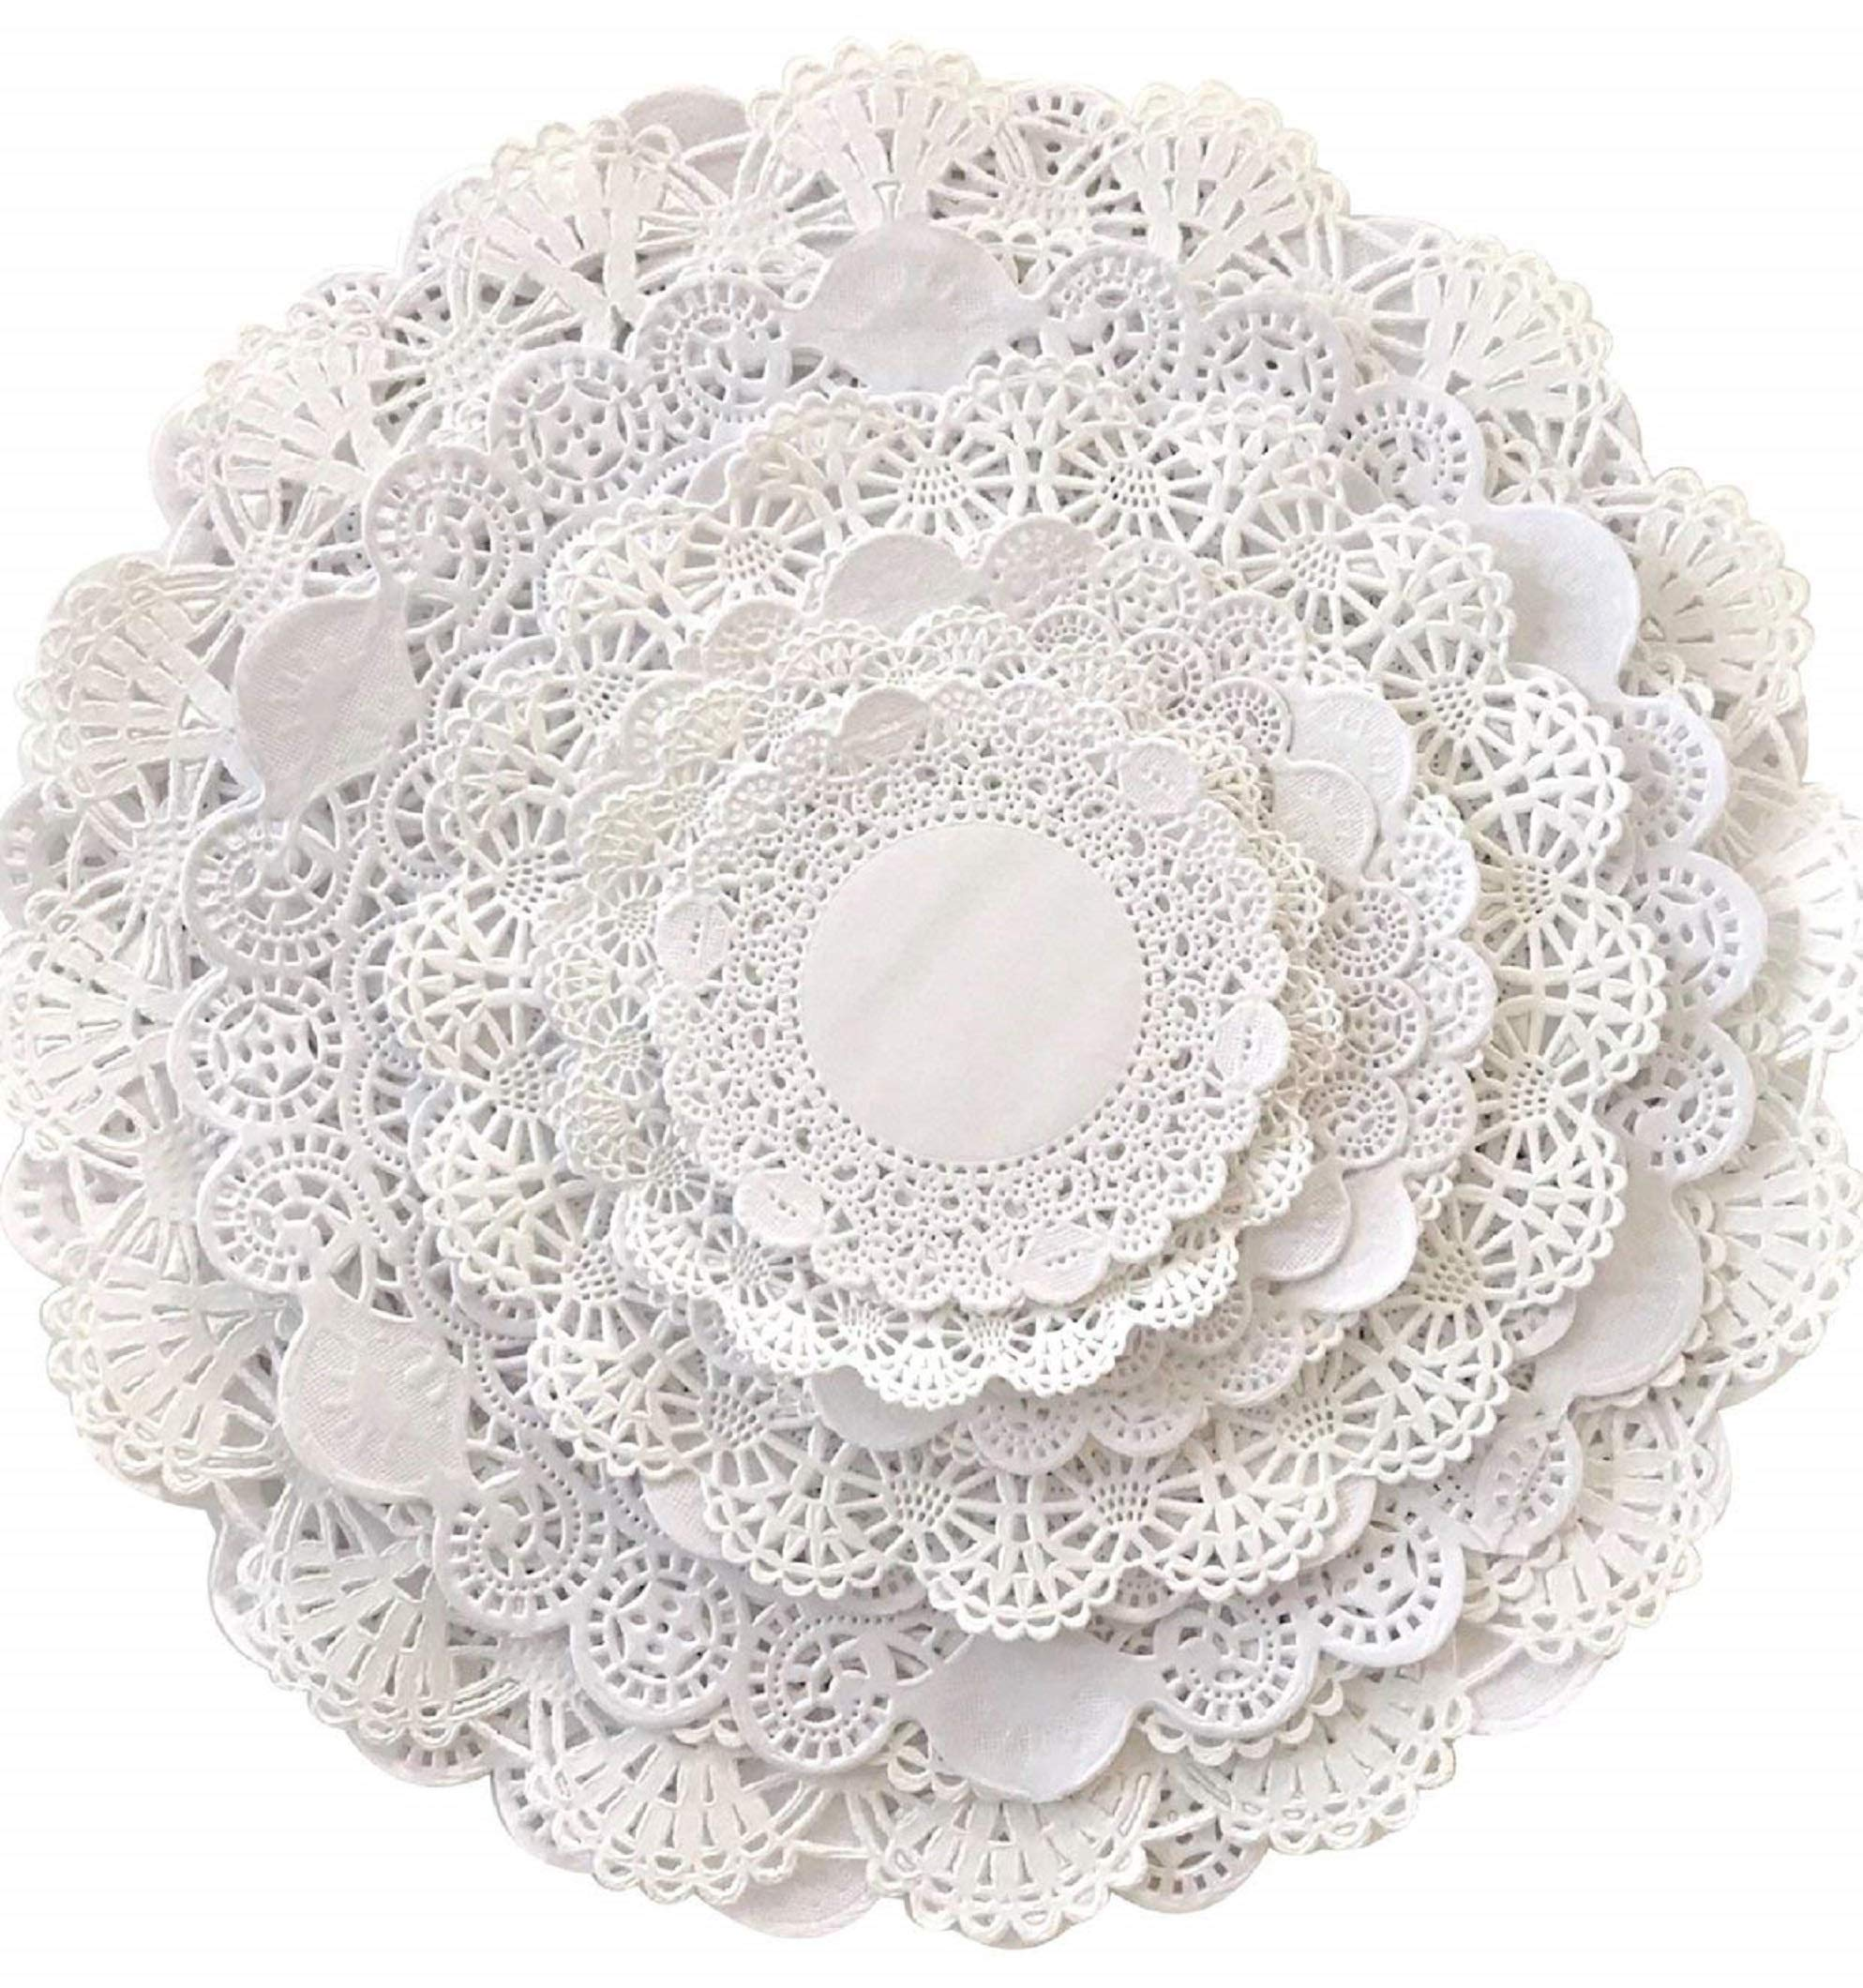 Variety Pack 120 Paper Lace Doilies Sizes 4, 5, 6, 8, 10 and 12 inch; Assorted Pack great for so many projects